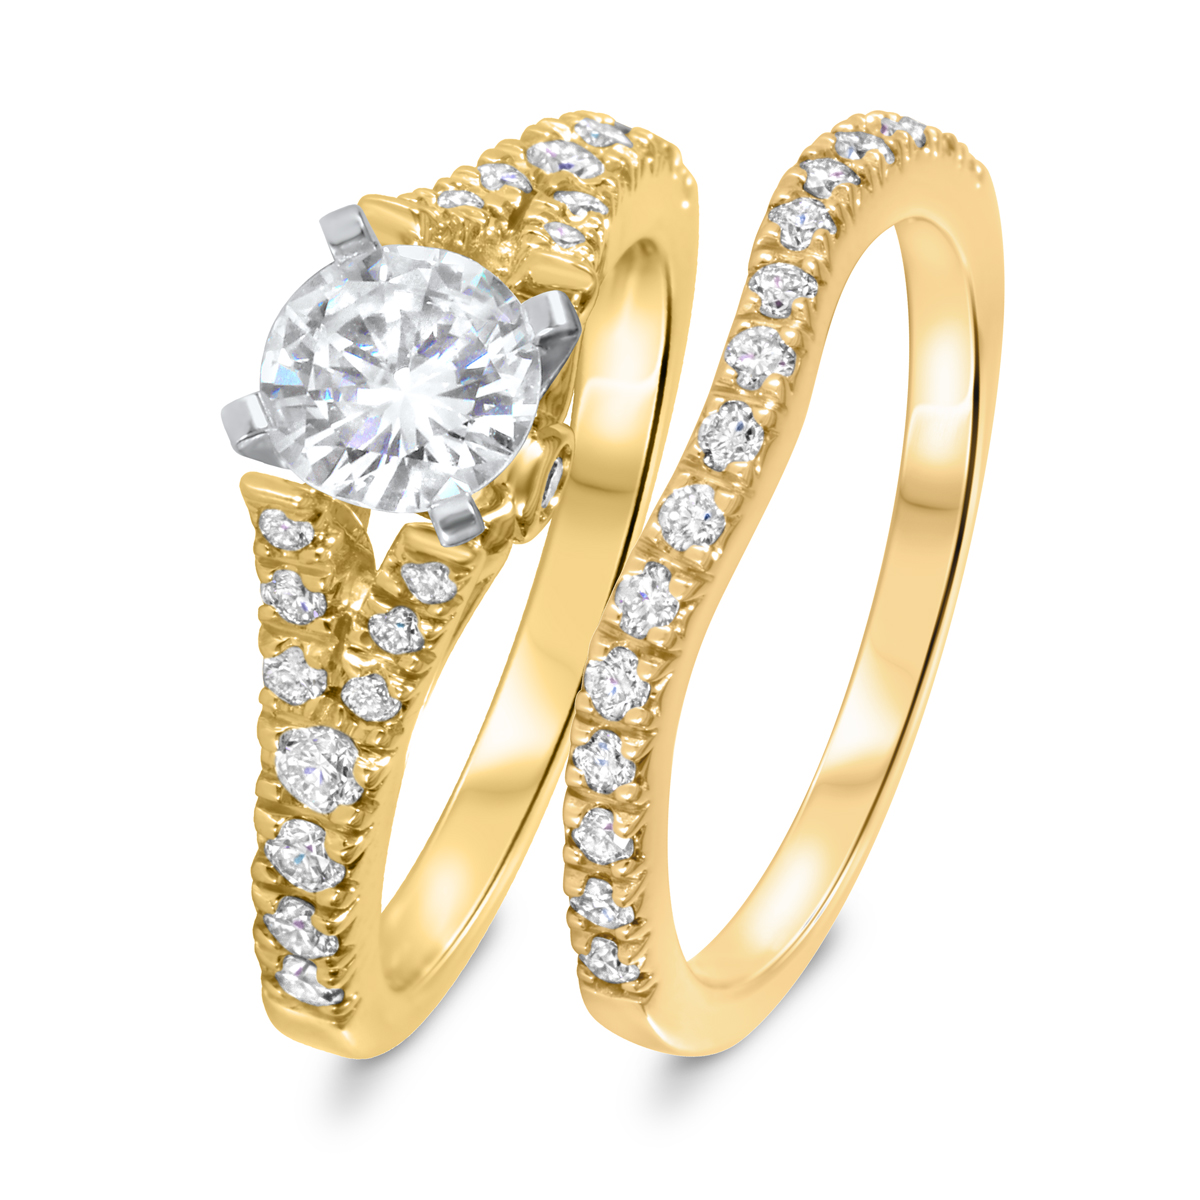 1 1/2 CT. T.W. Diamond Women's Bridal Wedding Ring Set 14K Yellow Gold